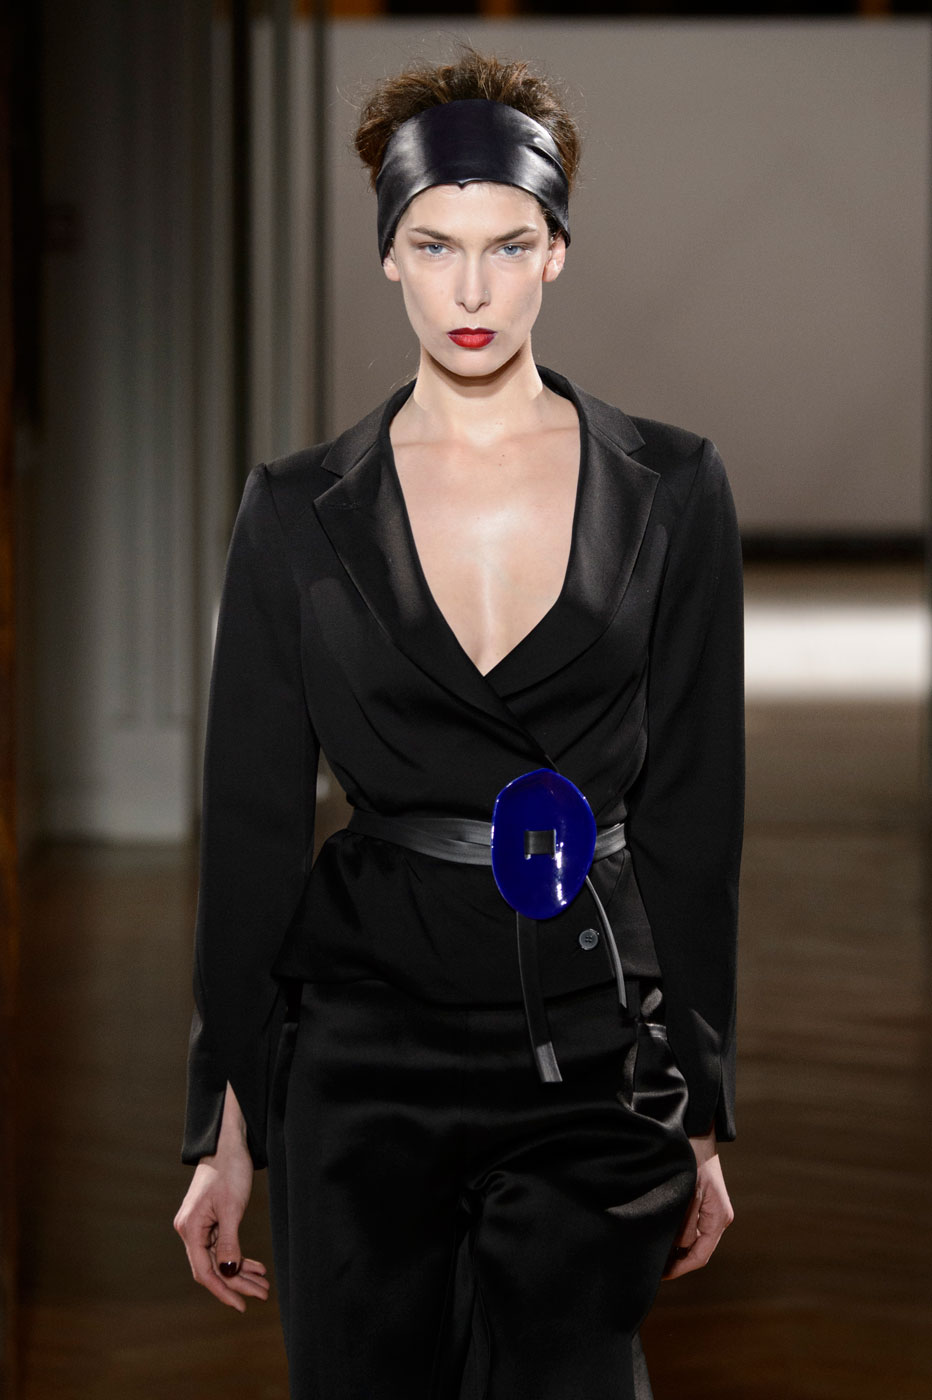 Gustavolins-Prive-fashion-runway-show-haute-couture-paris-spring-2015-the-impression-40